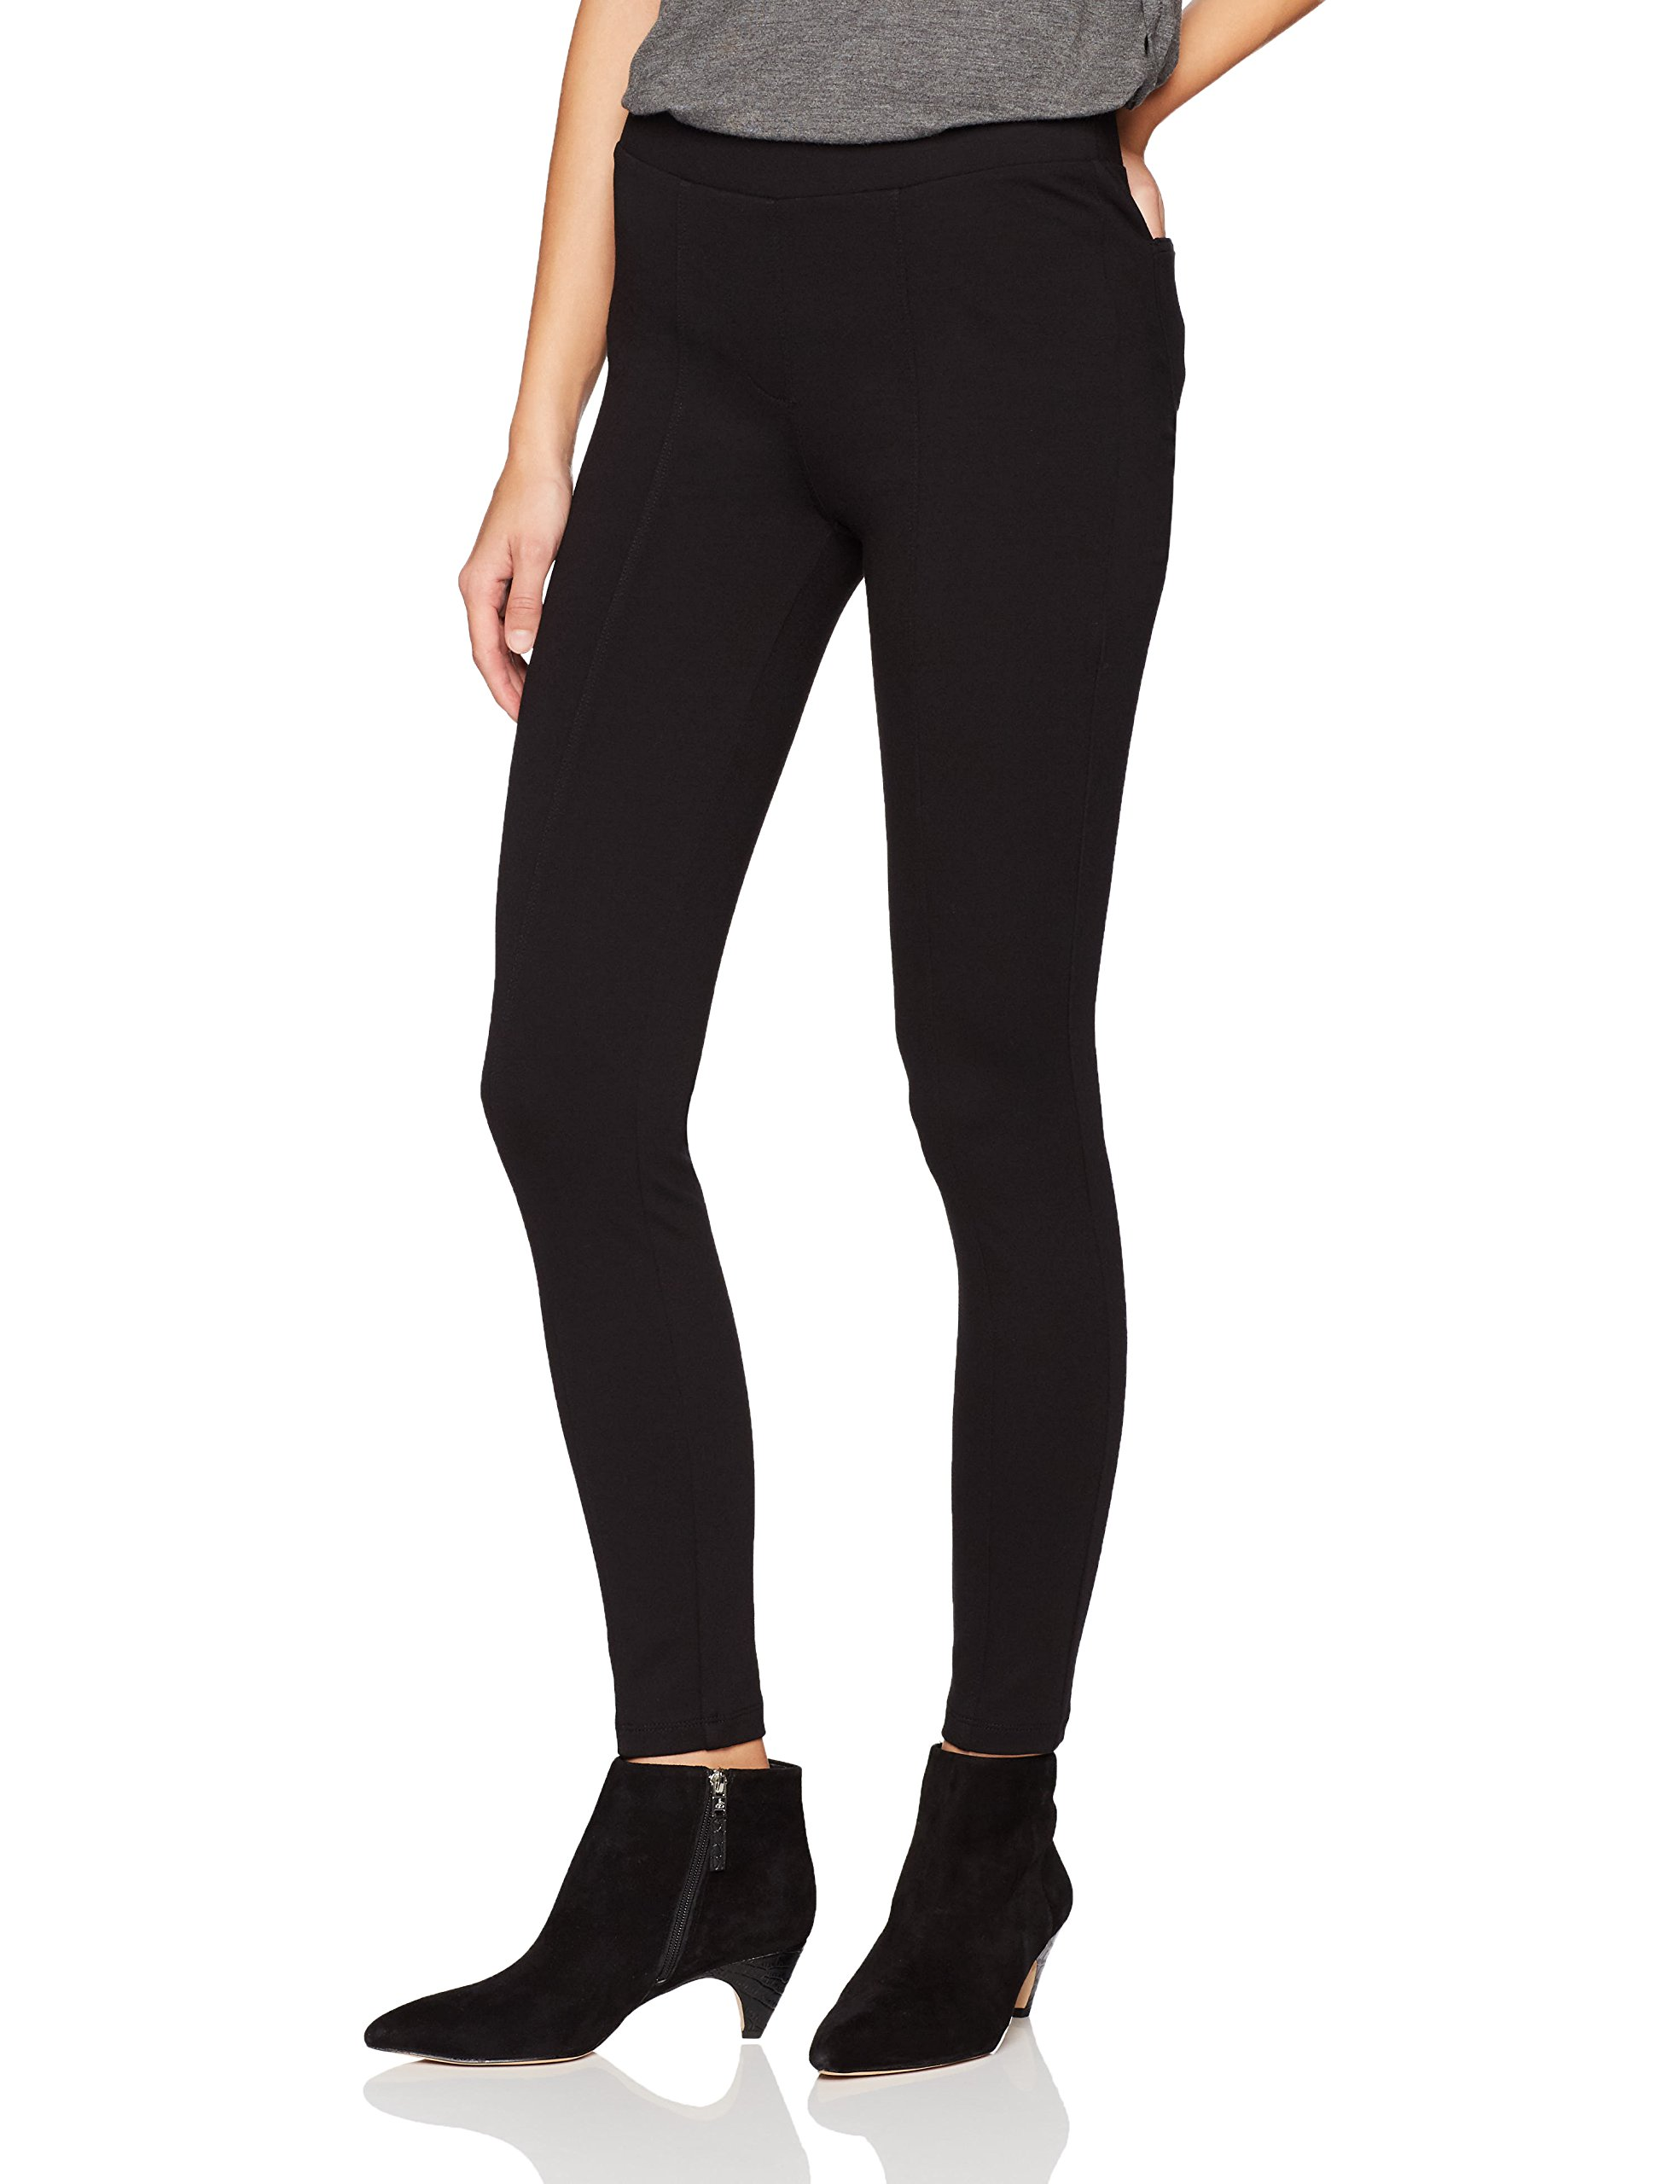 Daily Ritual Women's Seamed Front, 2-Pocket Ponte Knit Legging, Black, M, Regular